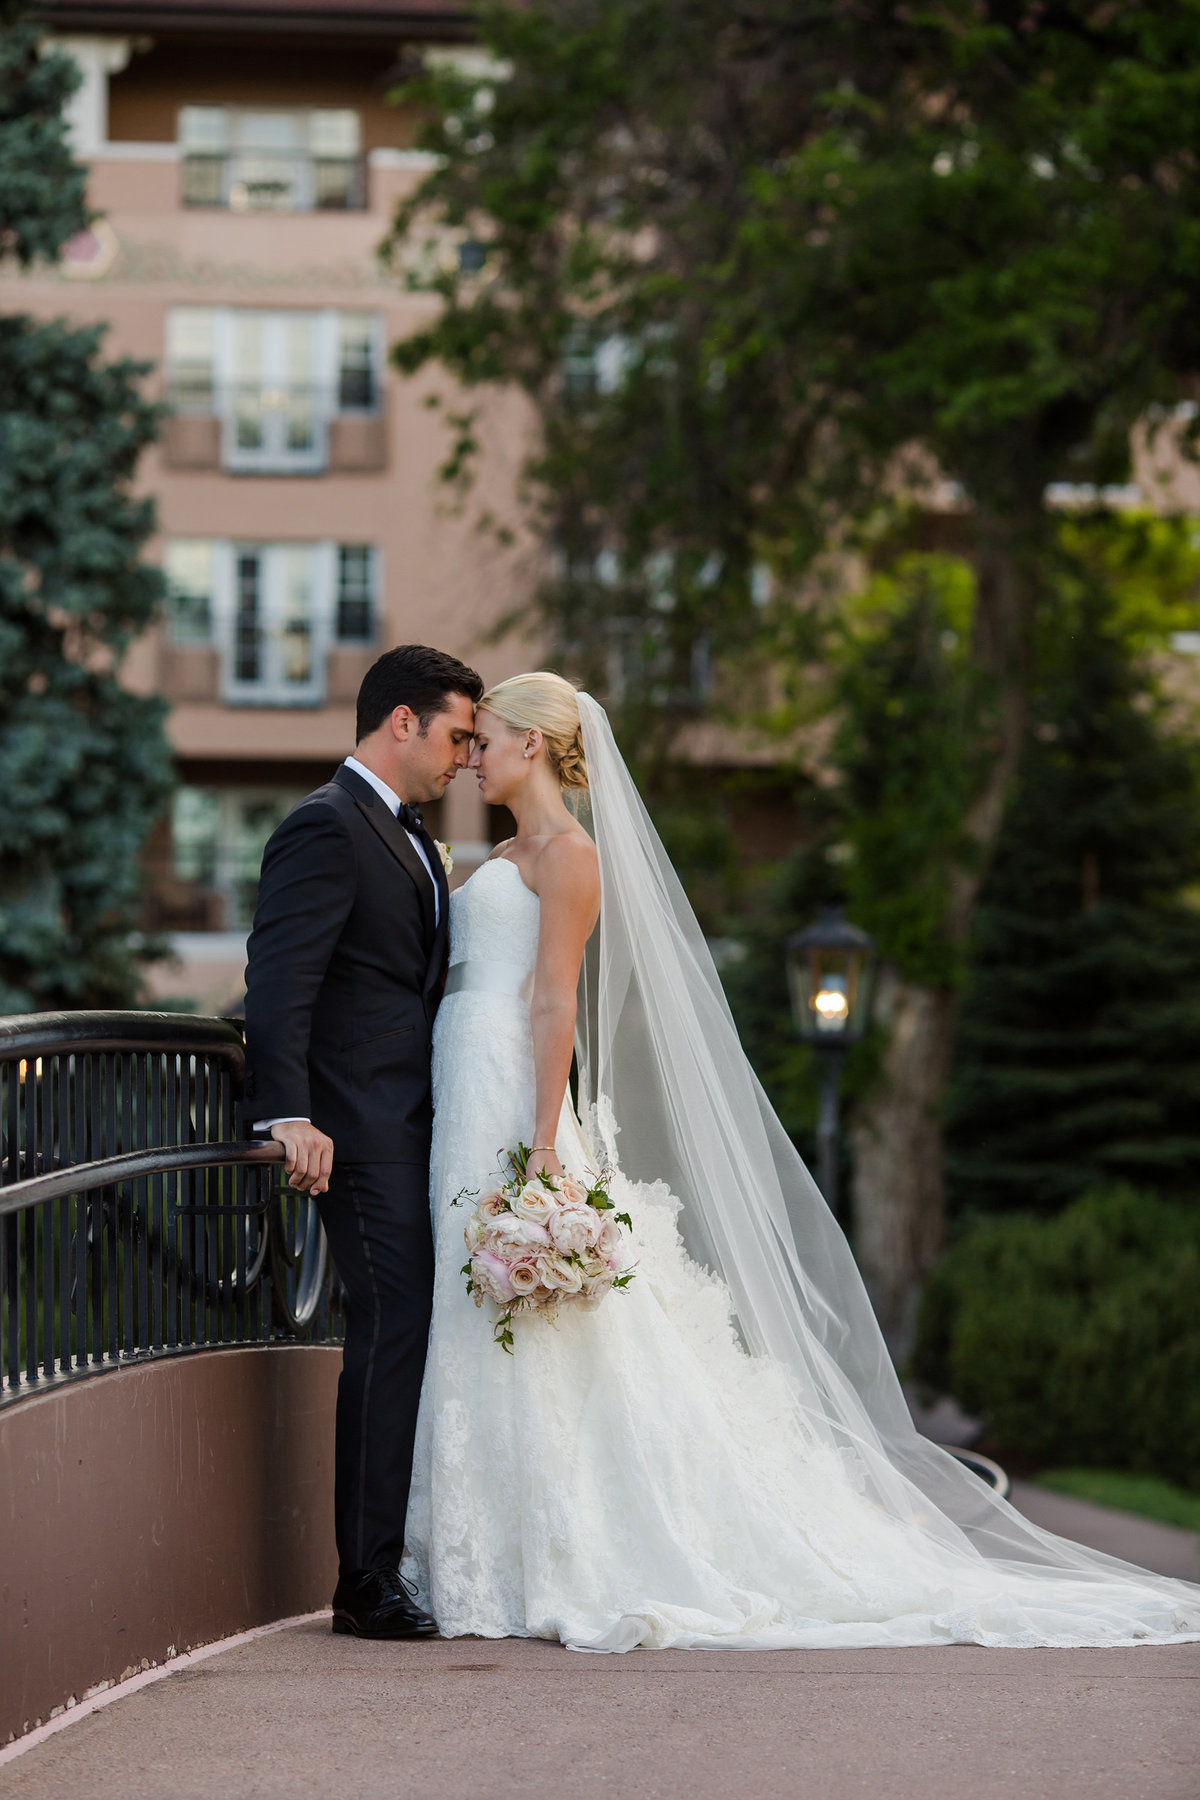 Wedding day at the broadmoor hotel